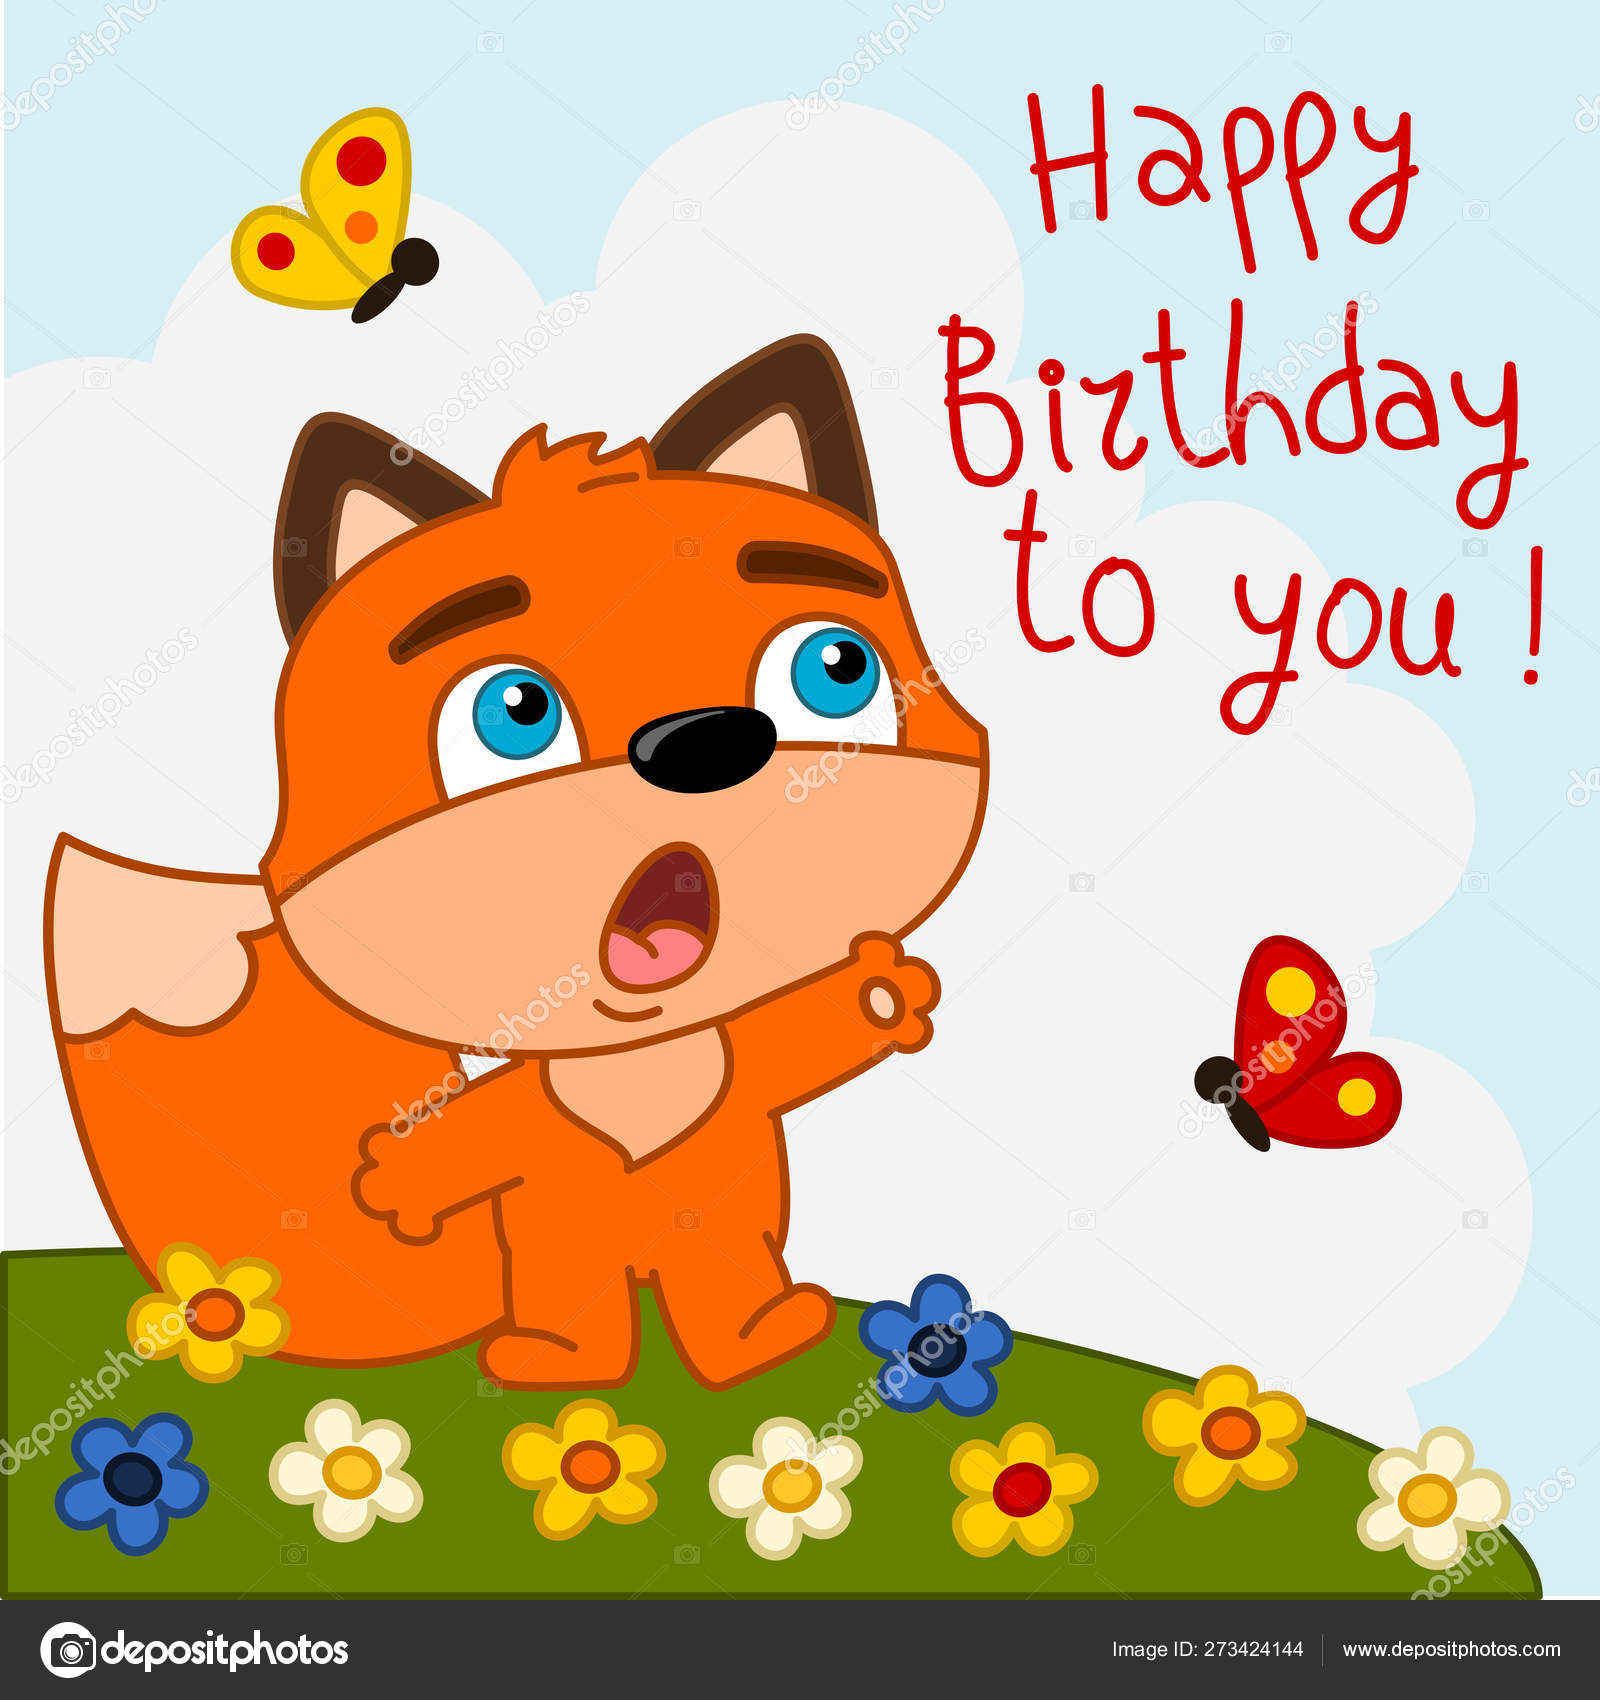 Greeting card with cute funny cartoon character of fox singing Happy  birthday to you song on meadow 8